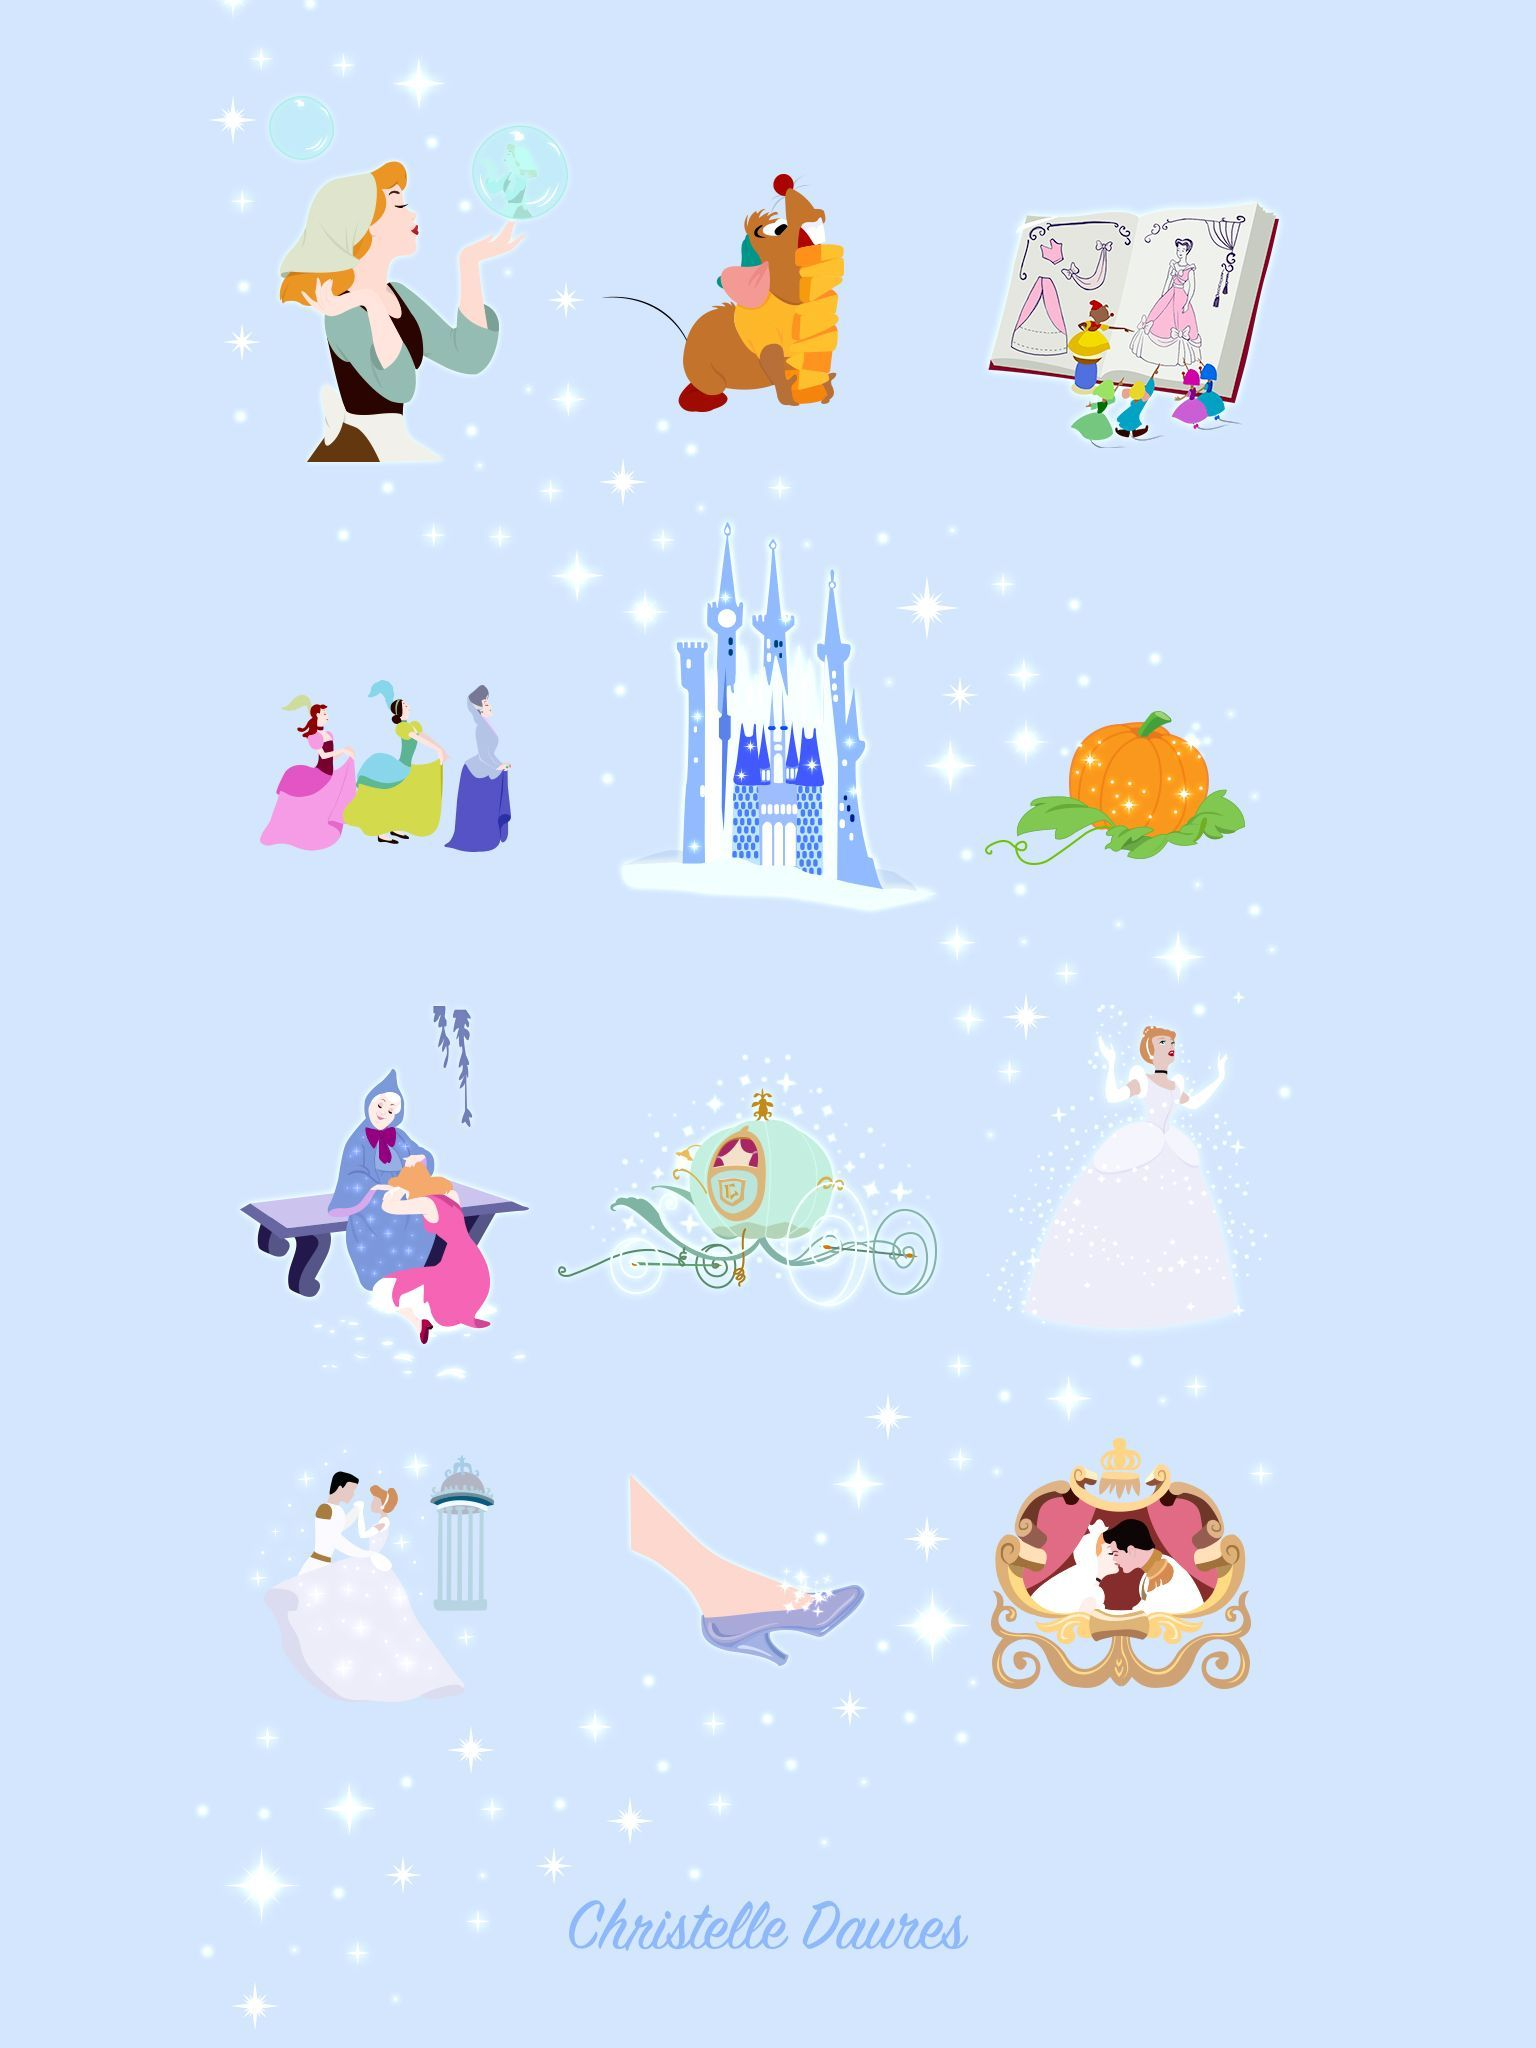 Disney Princess Iphone Wallpapers Top Free Disney Princess Iphone Backgrounds Wallpaperaccess